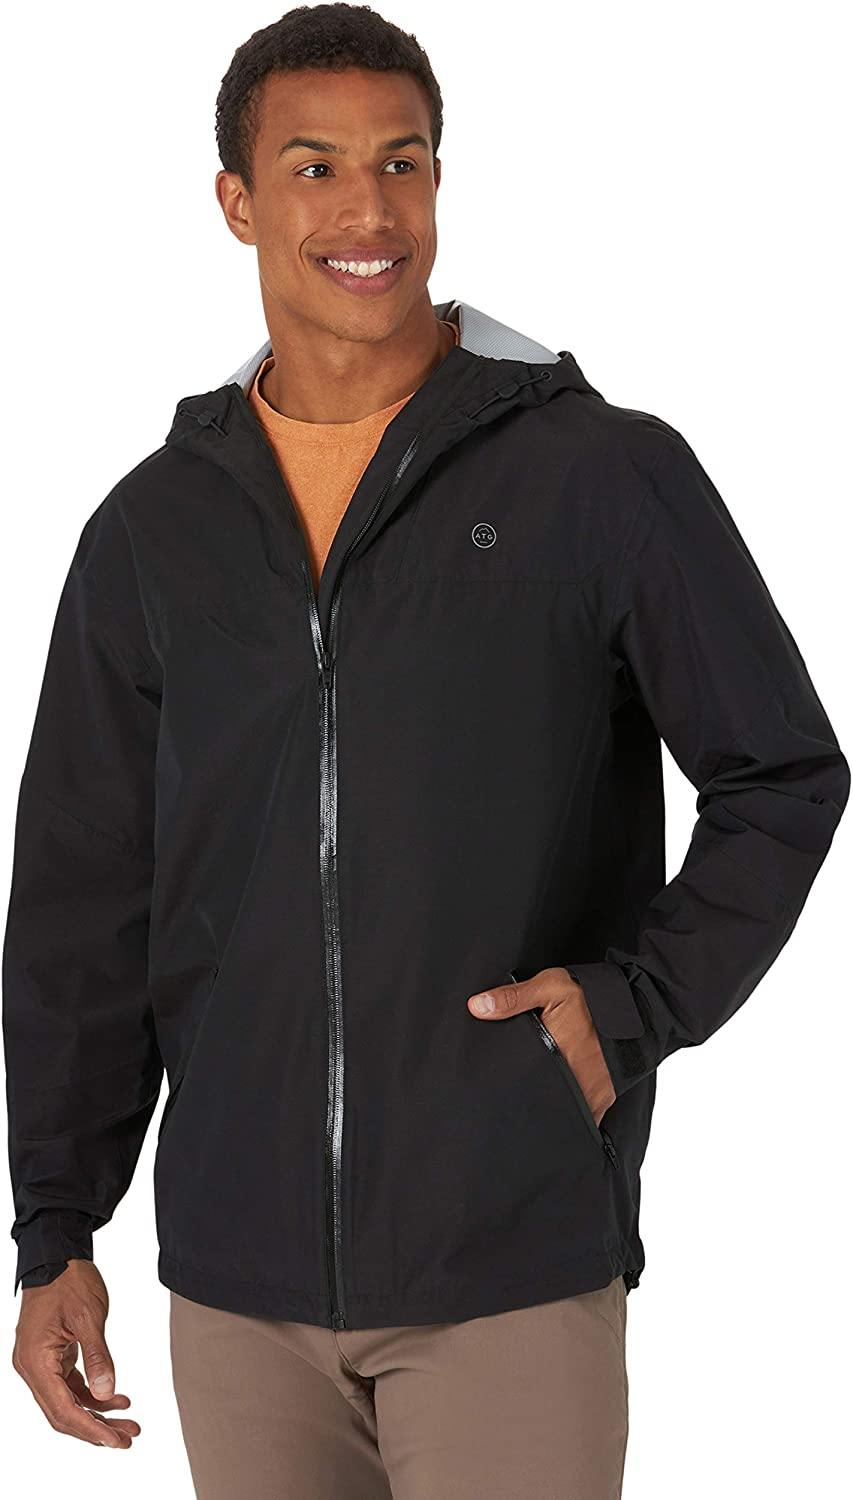 ATG Limited price sale by Chicago Mall Wrangler Jacket Rain Men's